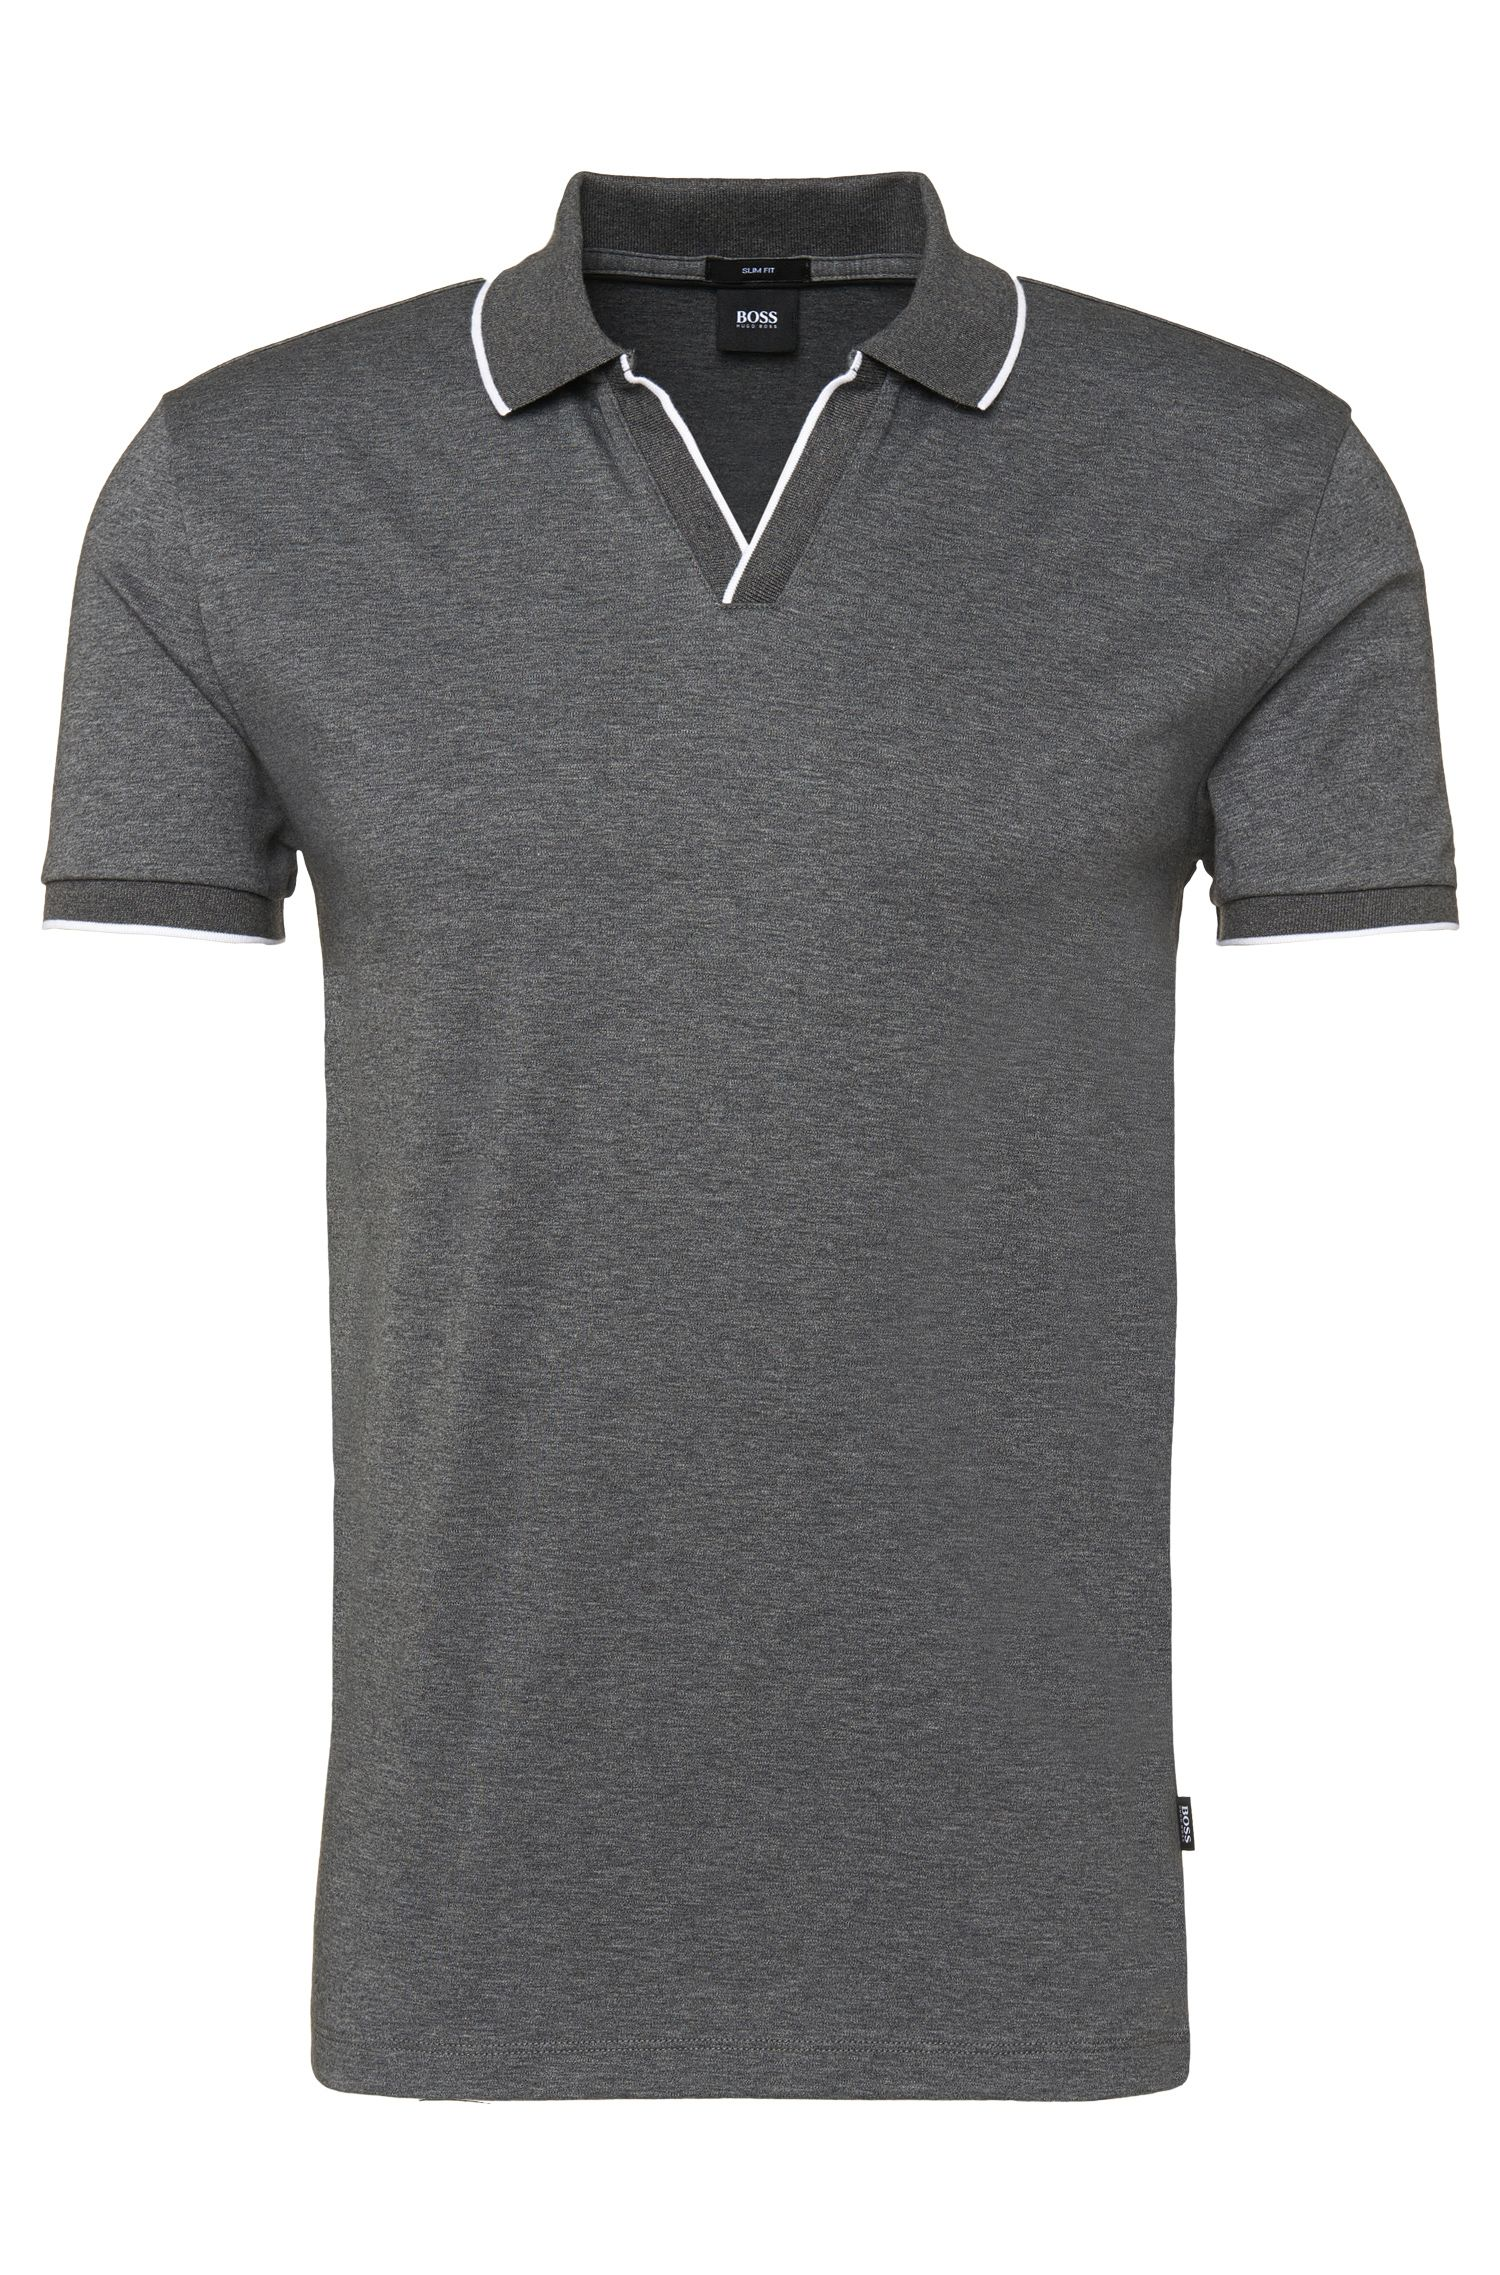 'Phillipson' | Slim Fit, Cotton Surplice V-Neck Polo